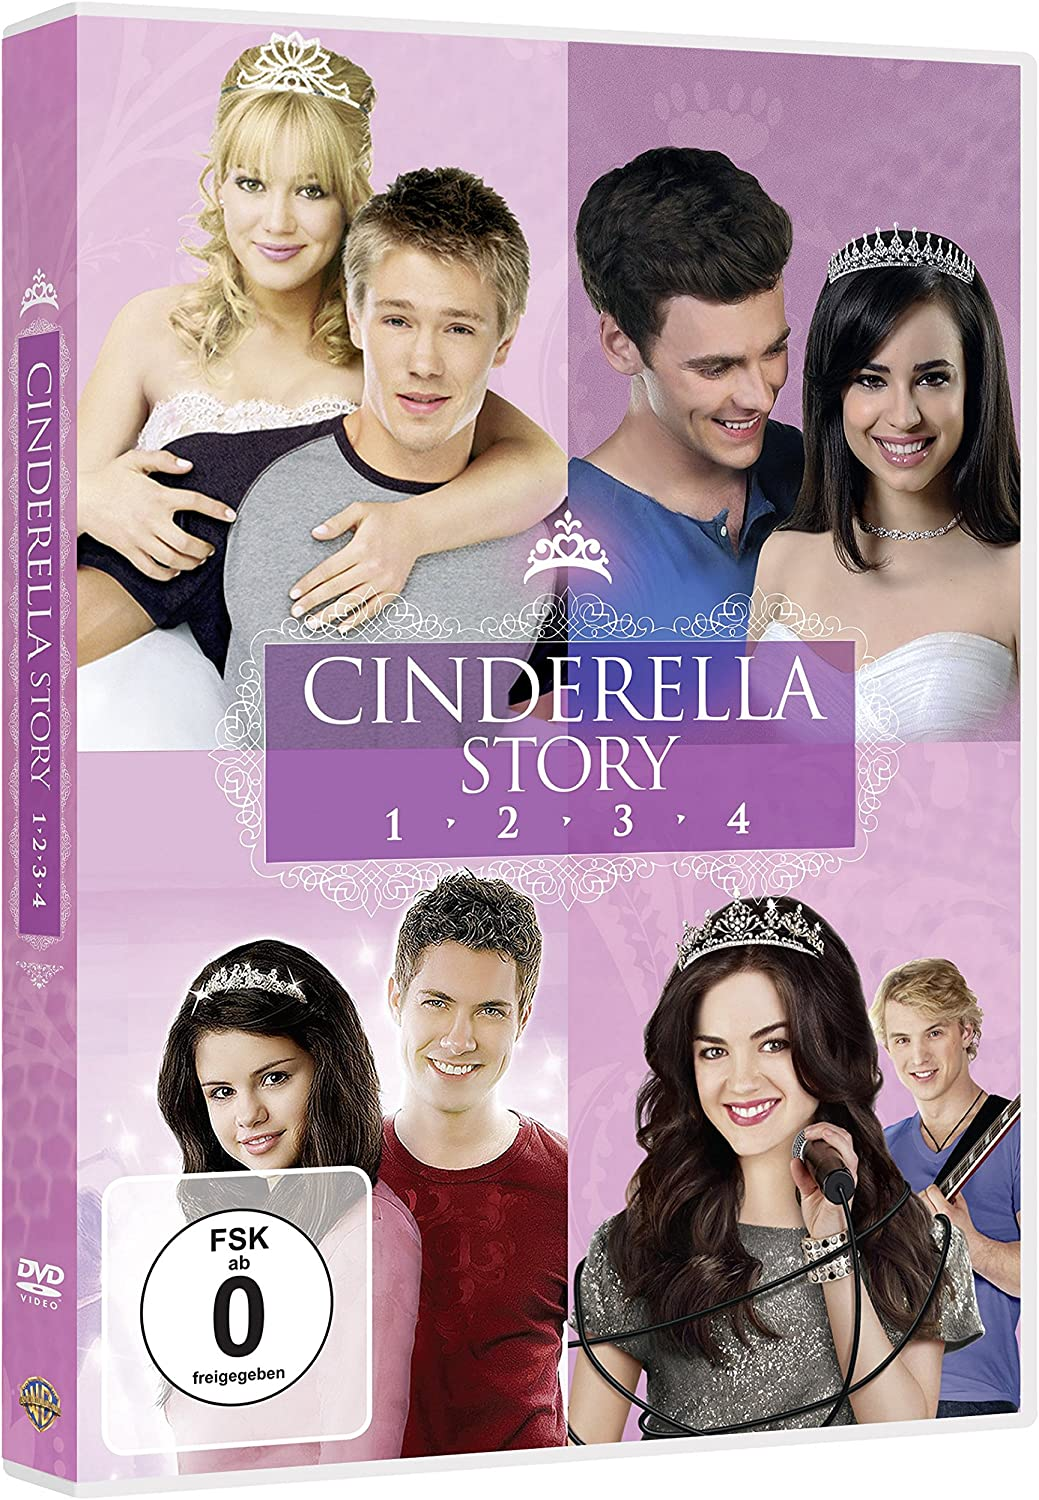 A Cinderella Story If The Shoe Fits Dvd Australia Cinderella Story Amazon Co Uk Dvd Blu Ray